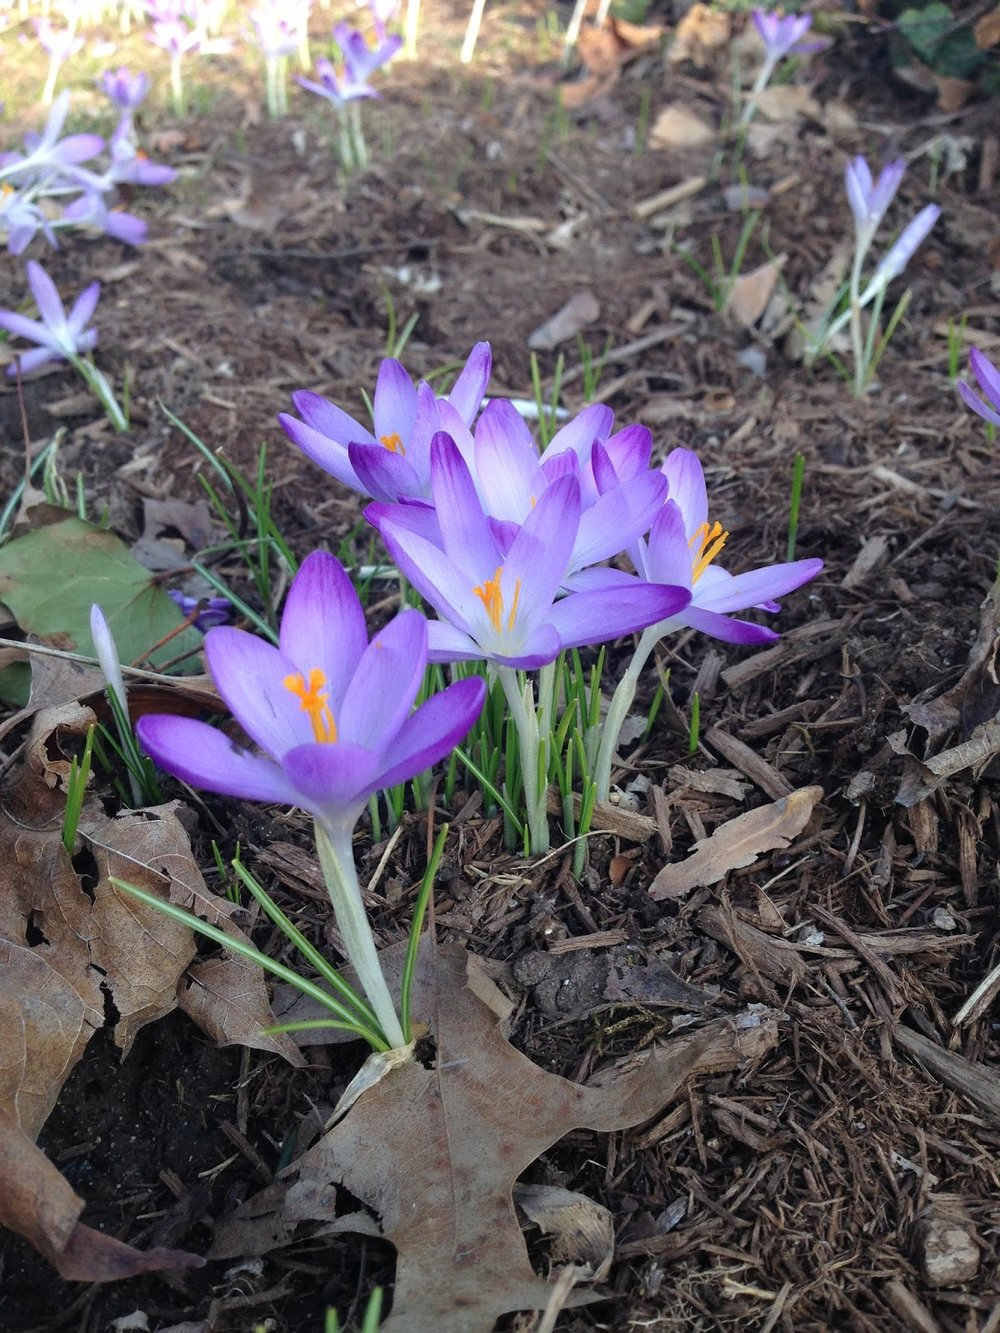 Crocuses come up very early in the spring